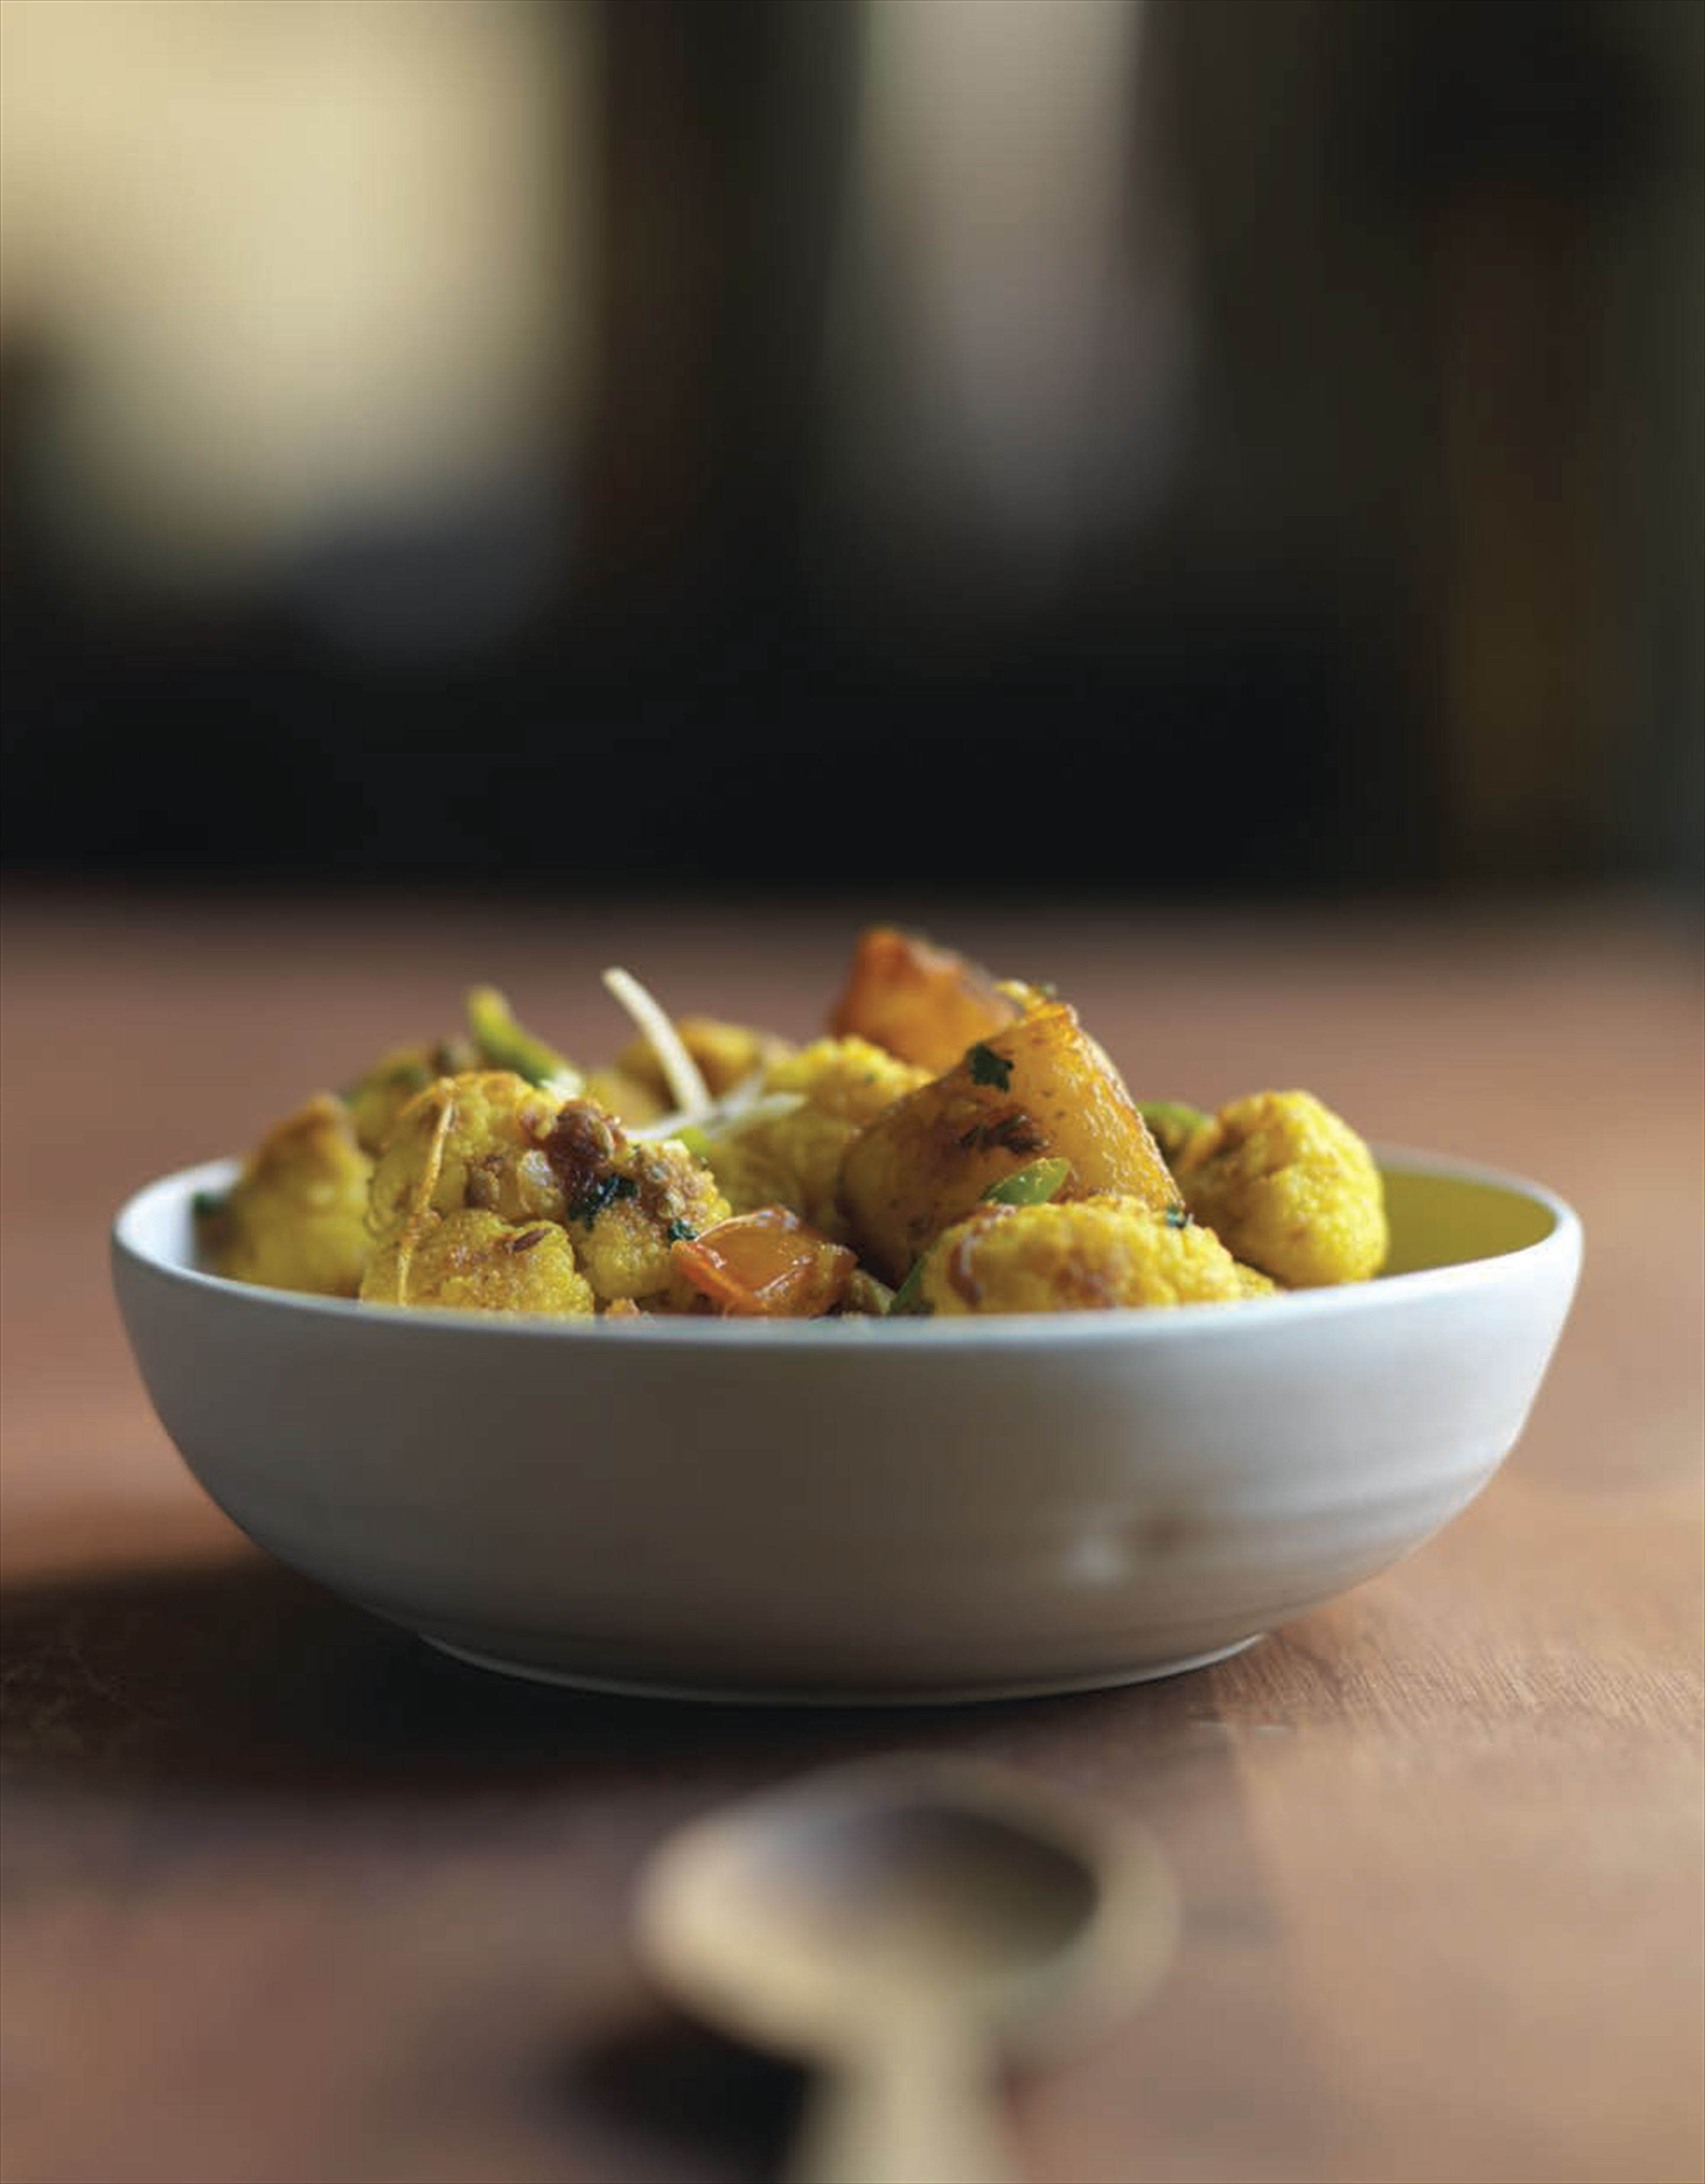 Home-style curry of potatoes and cauliflower